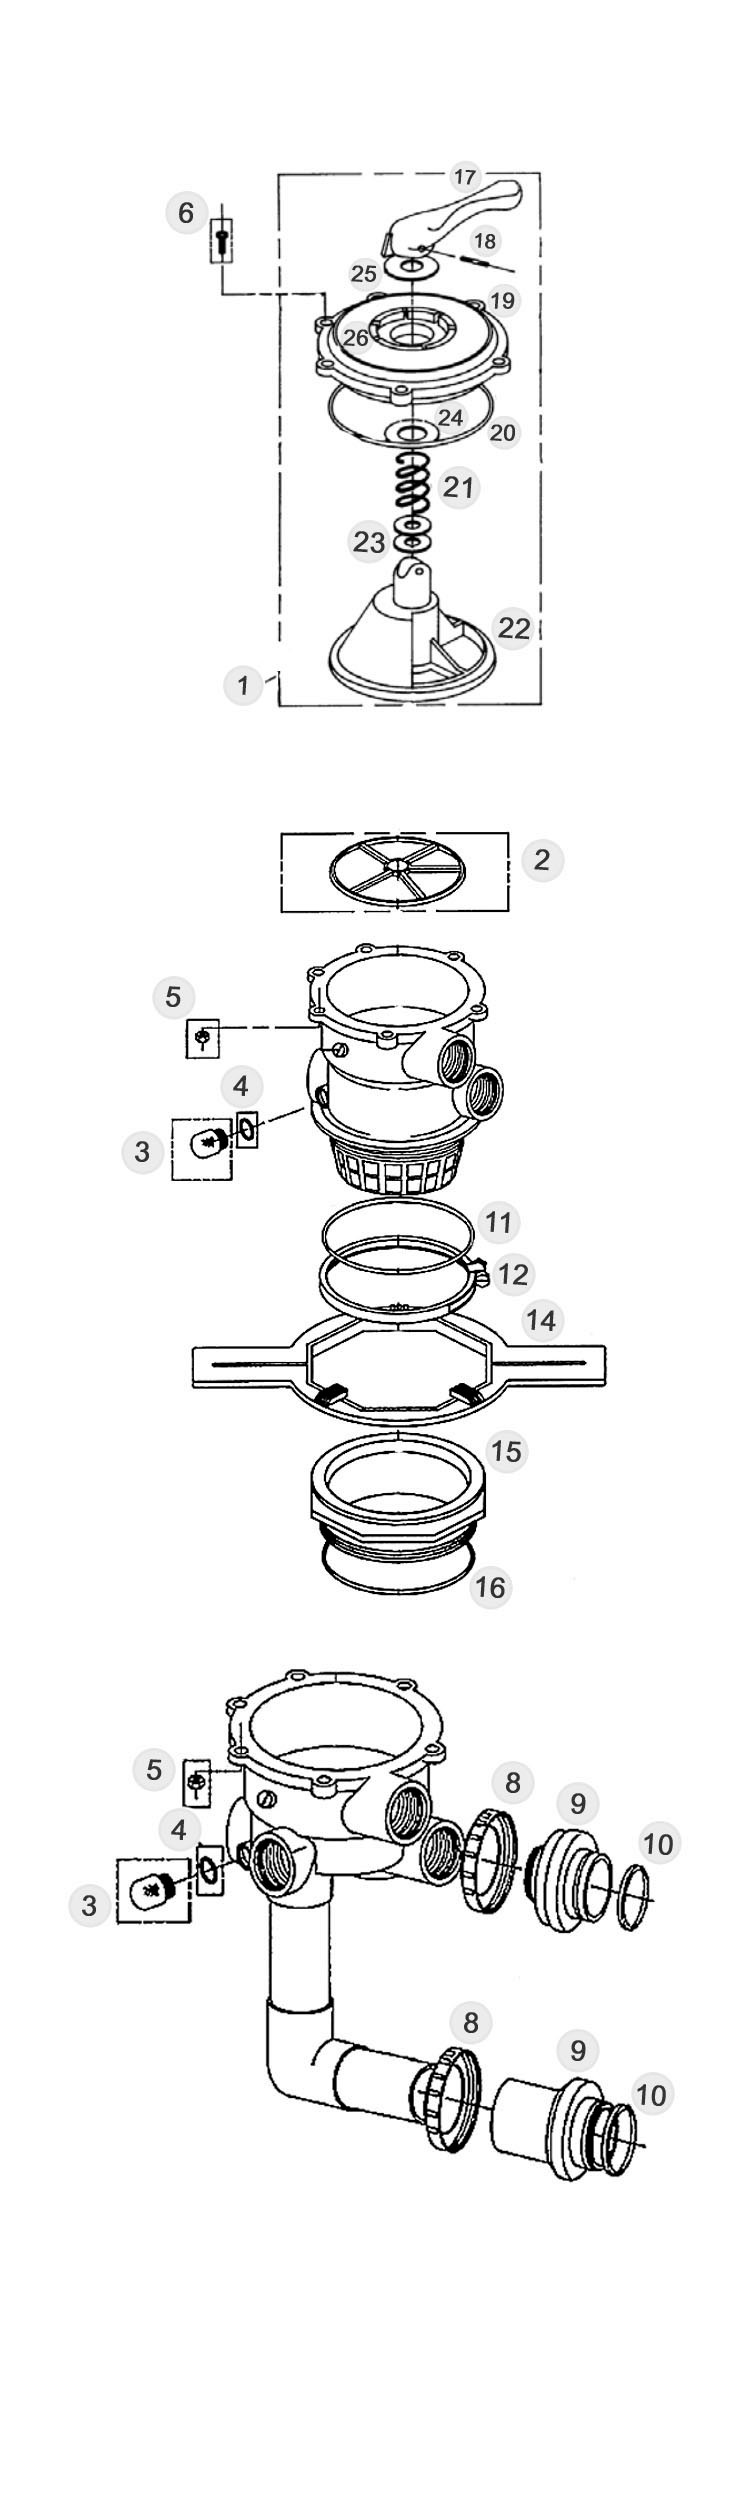 """Pentair Pre-Plumbed Multiport Valve Kit 2"""" for Sand Filters and Quad DE SM2-PP3 